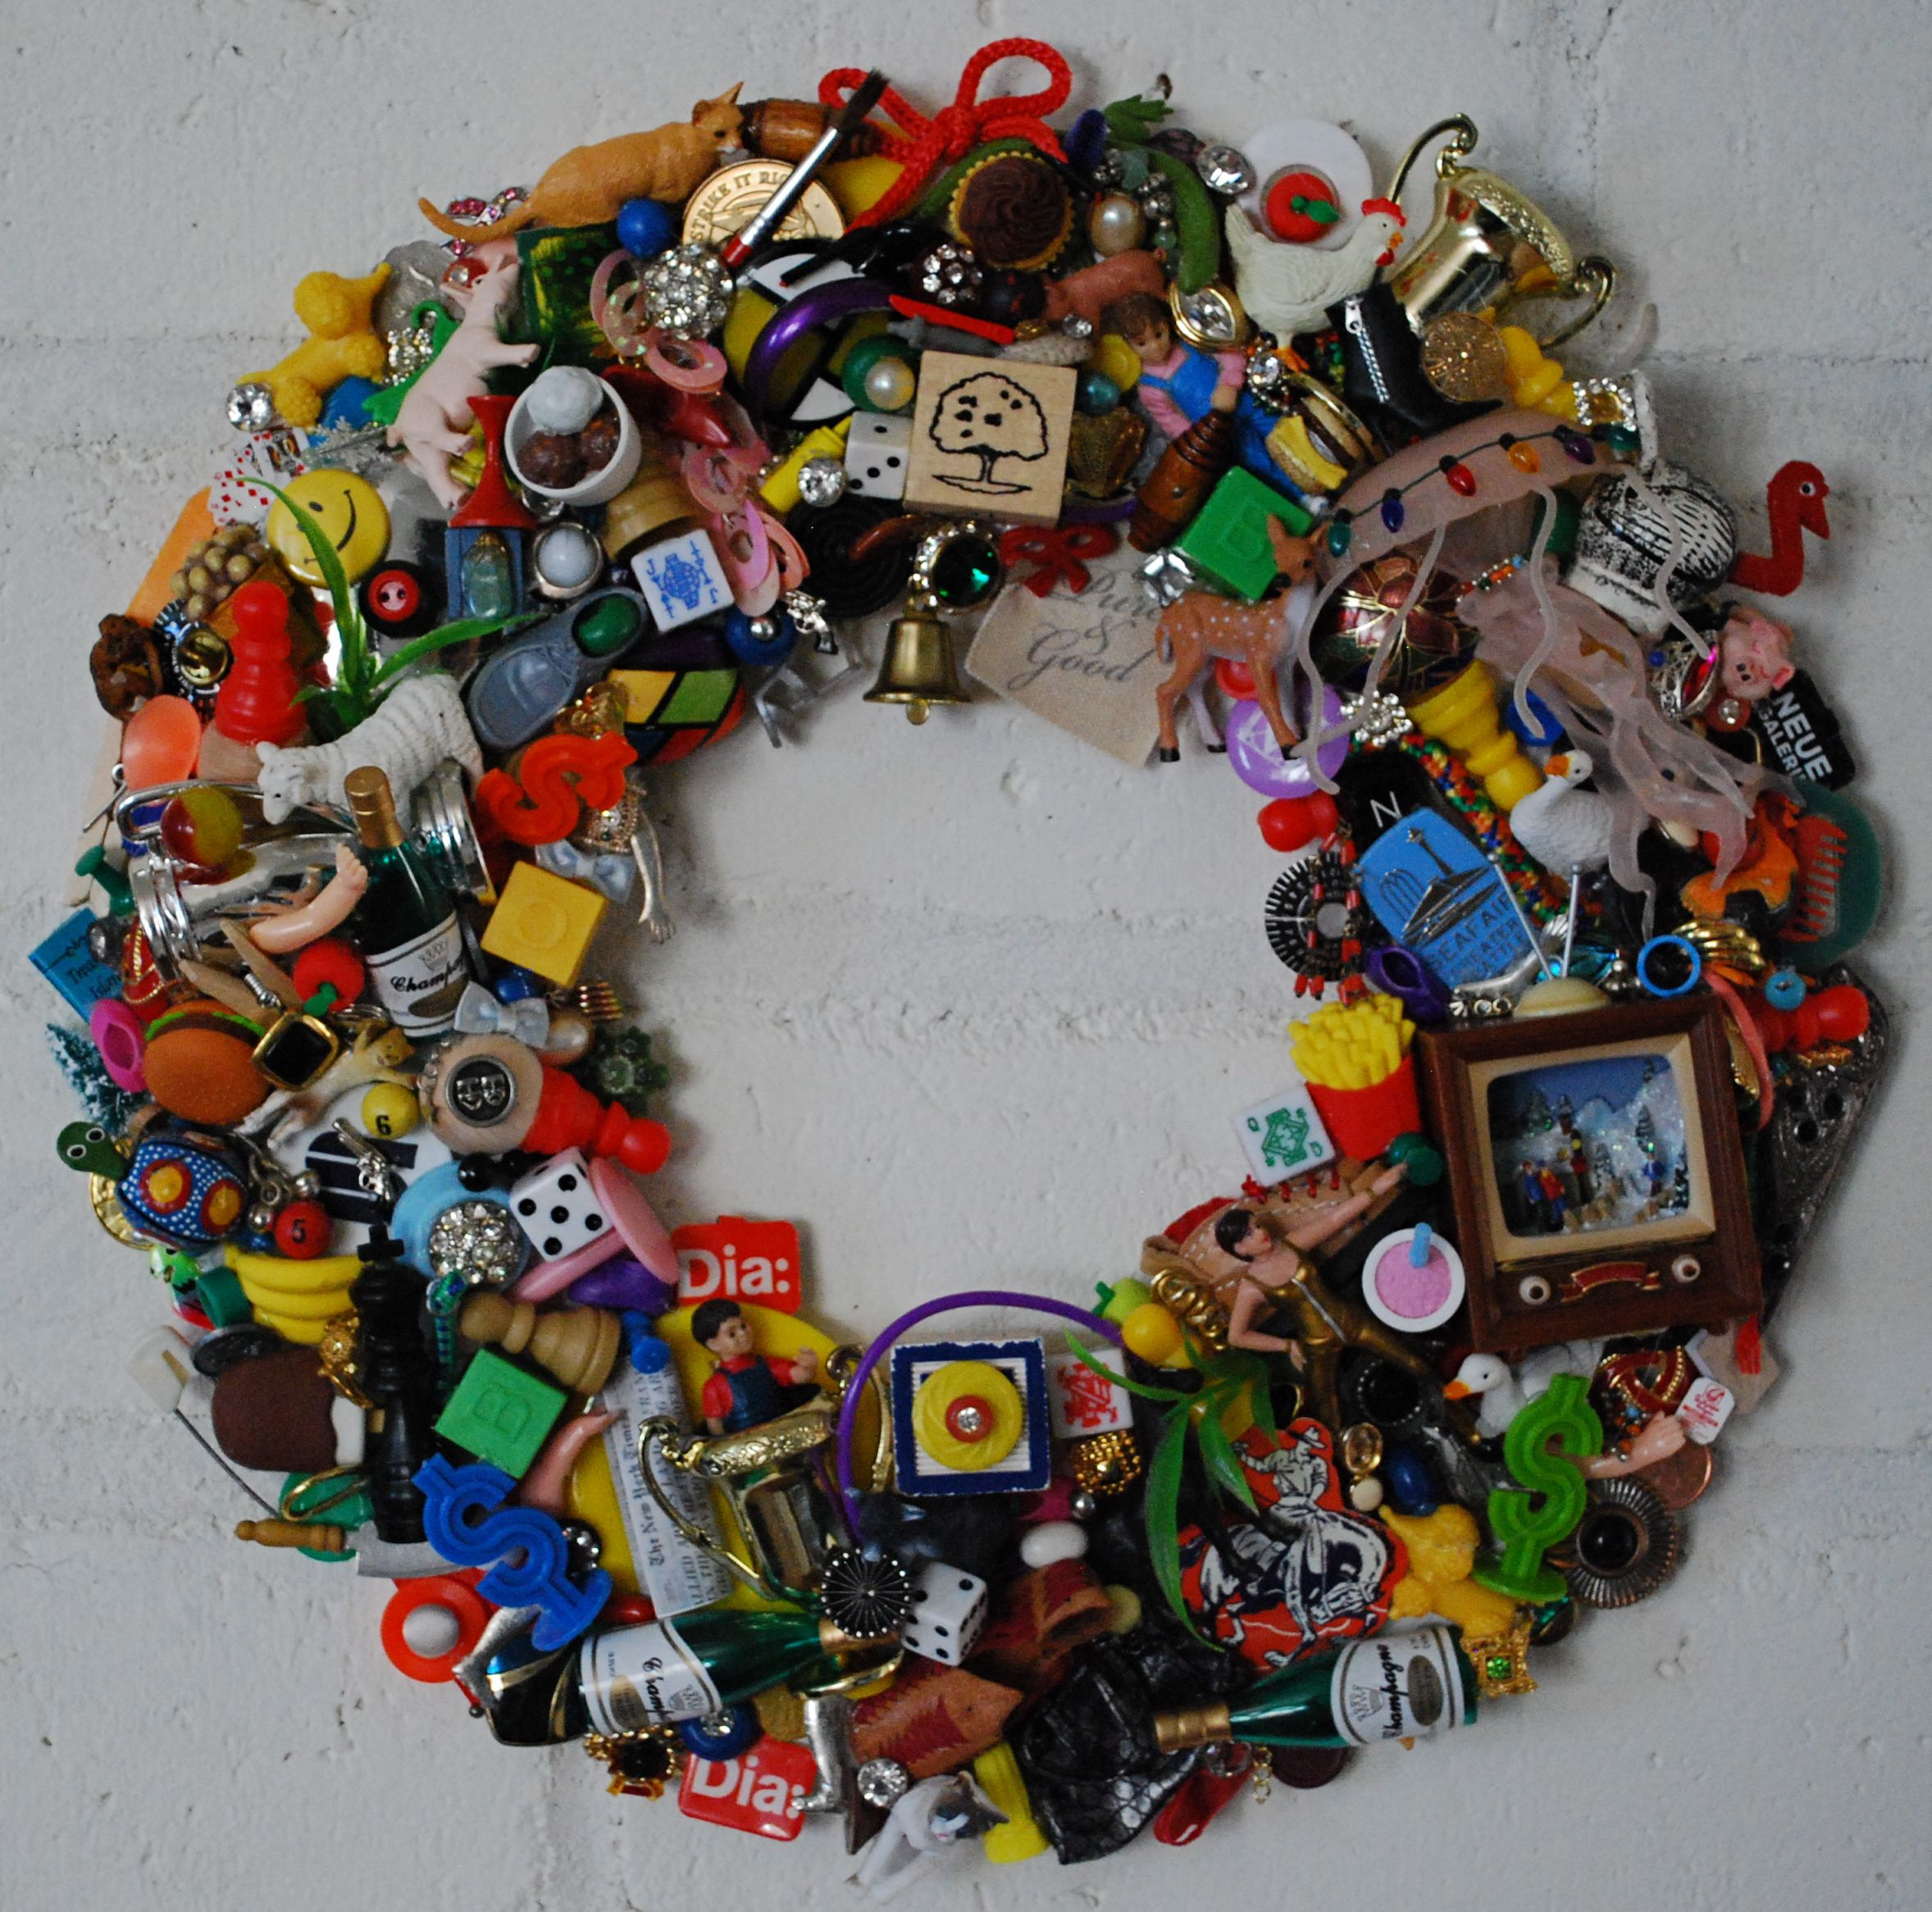 30 Fun Diy Repurposed Toys Ideas Crazy Wreath Lady